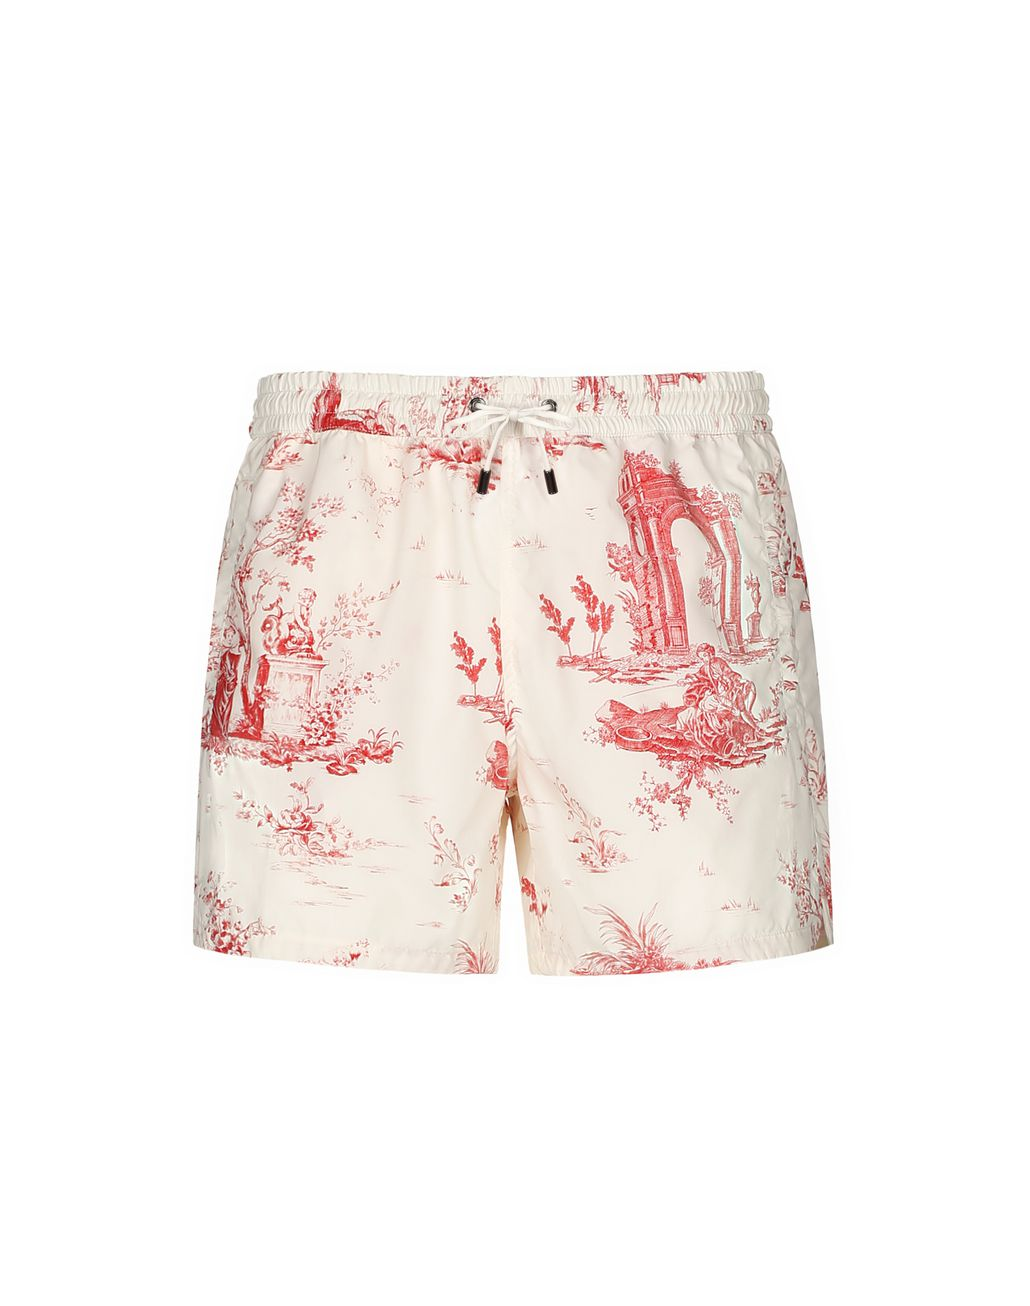 BRIONI White and Red Short Swims Short Beachwear Man f